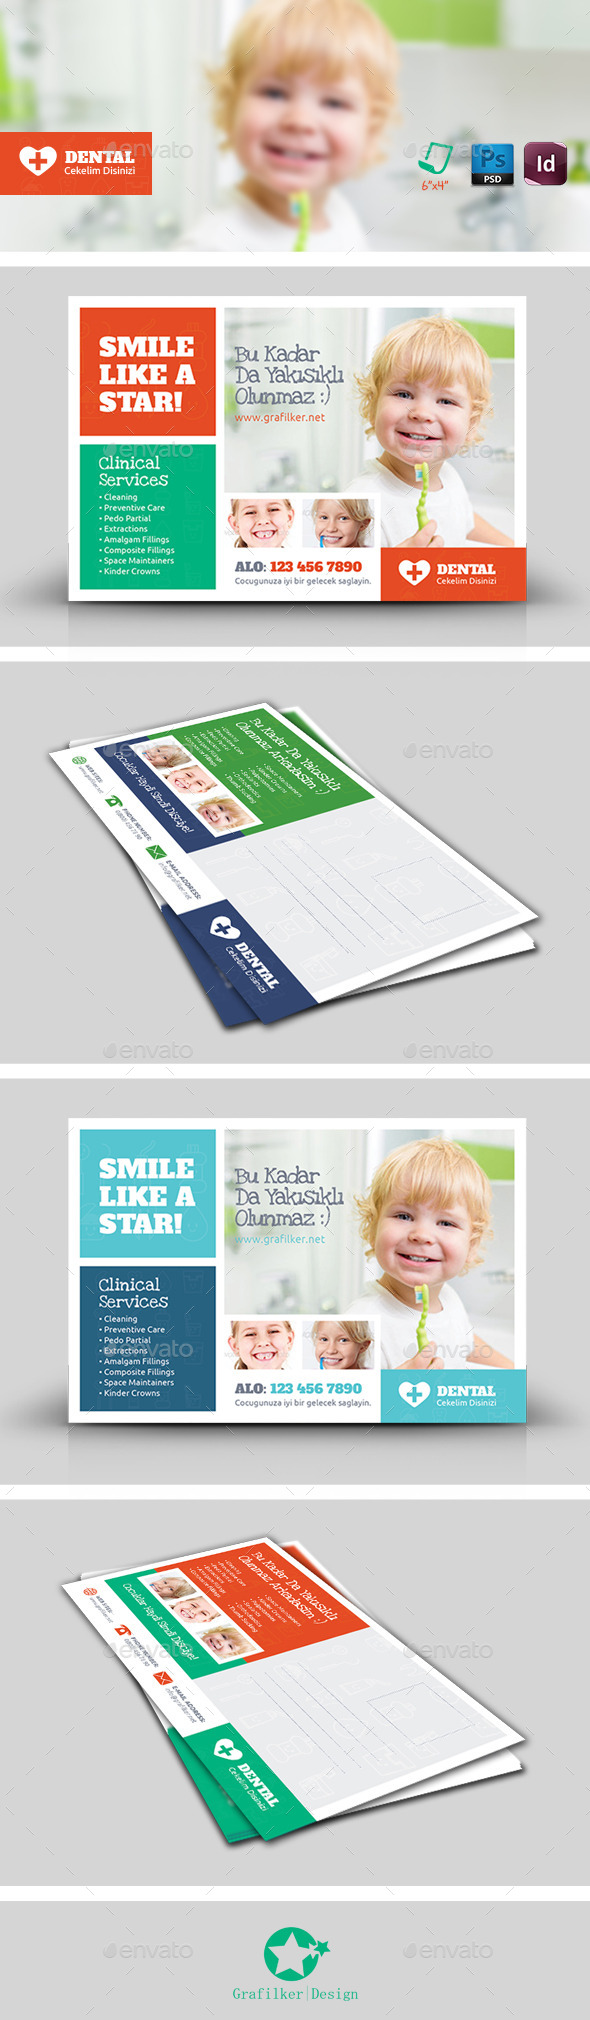 Kids Dental Postcard Templates - Corporate Flyers